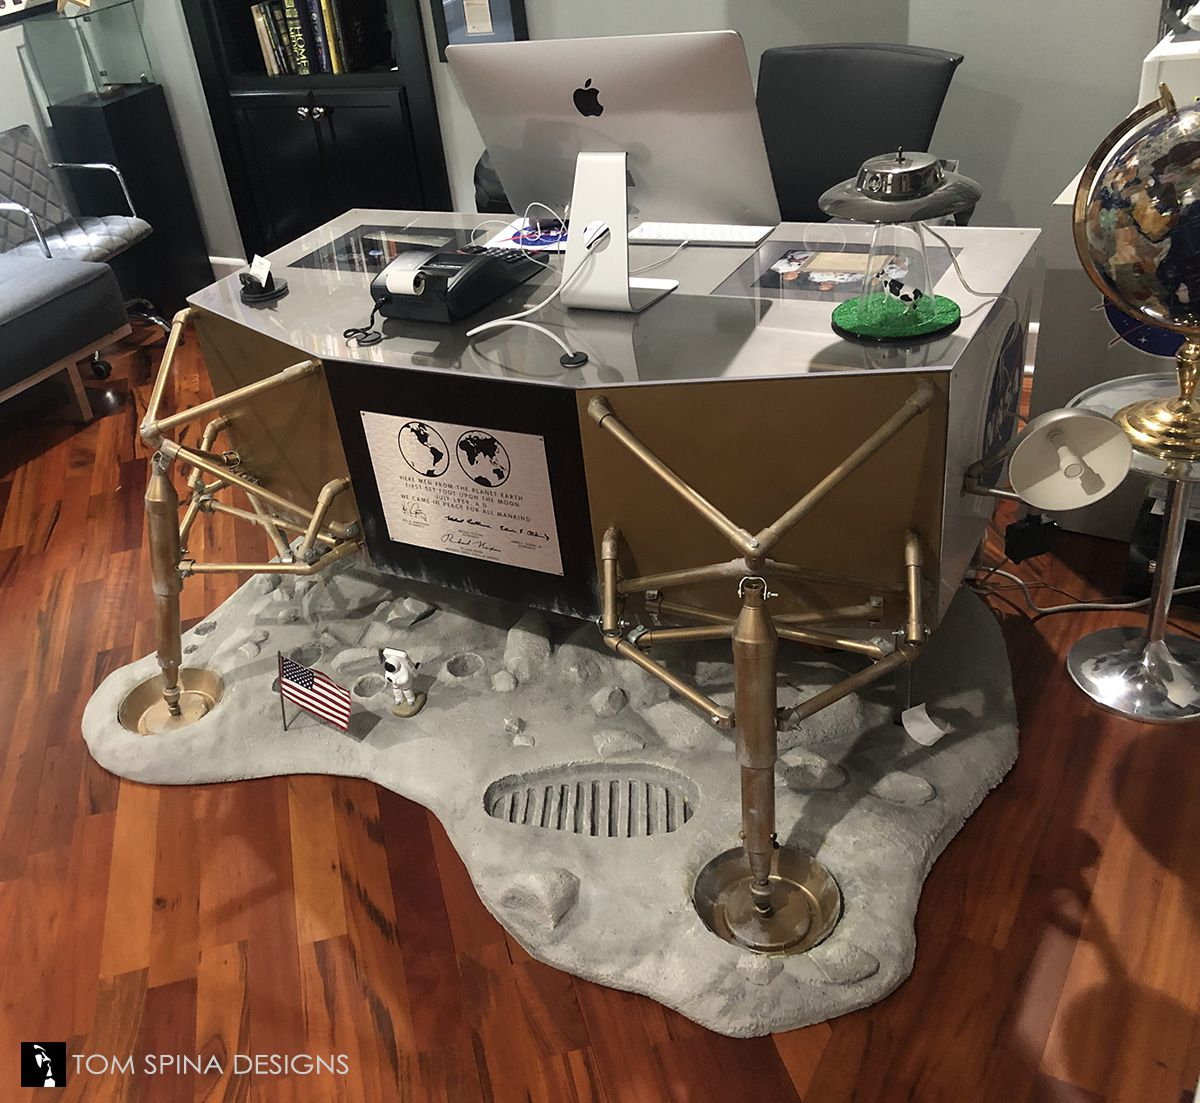 A desk made to look like the Apollo 11 lunar lander